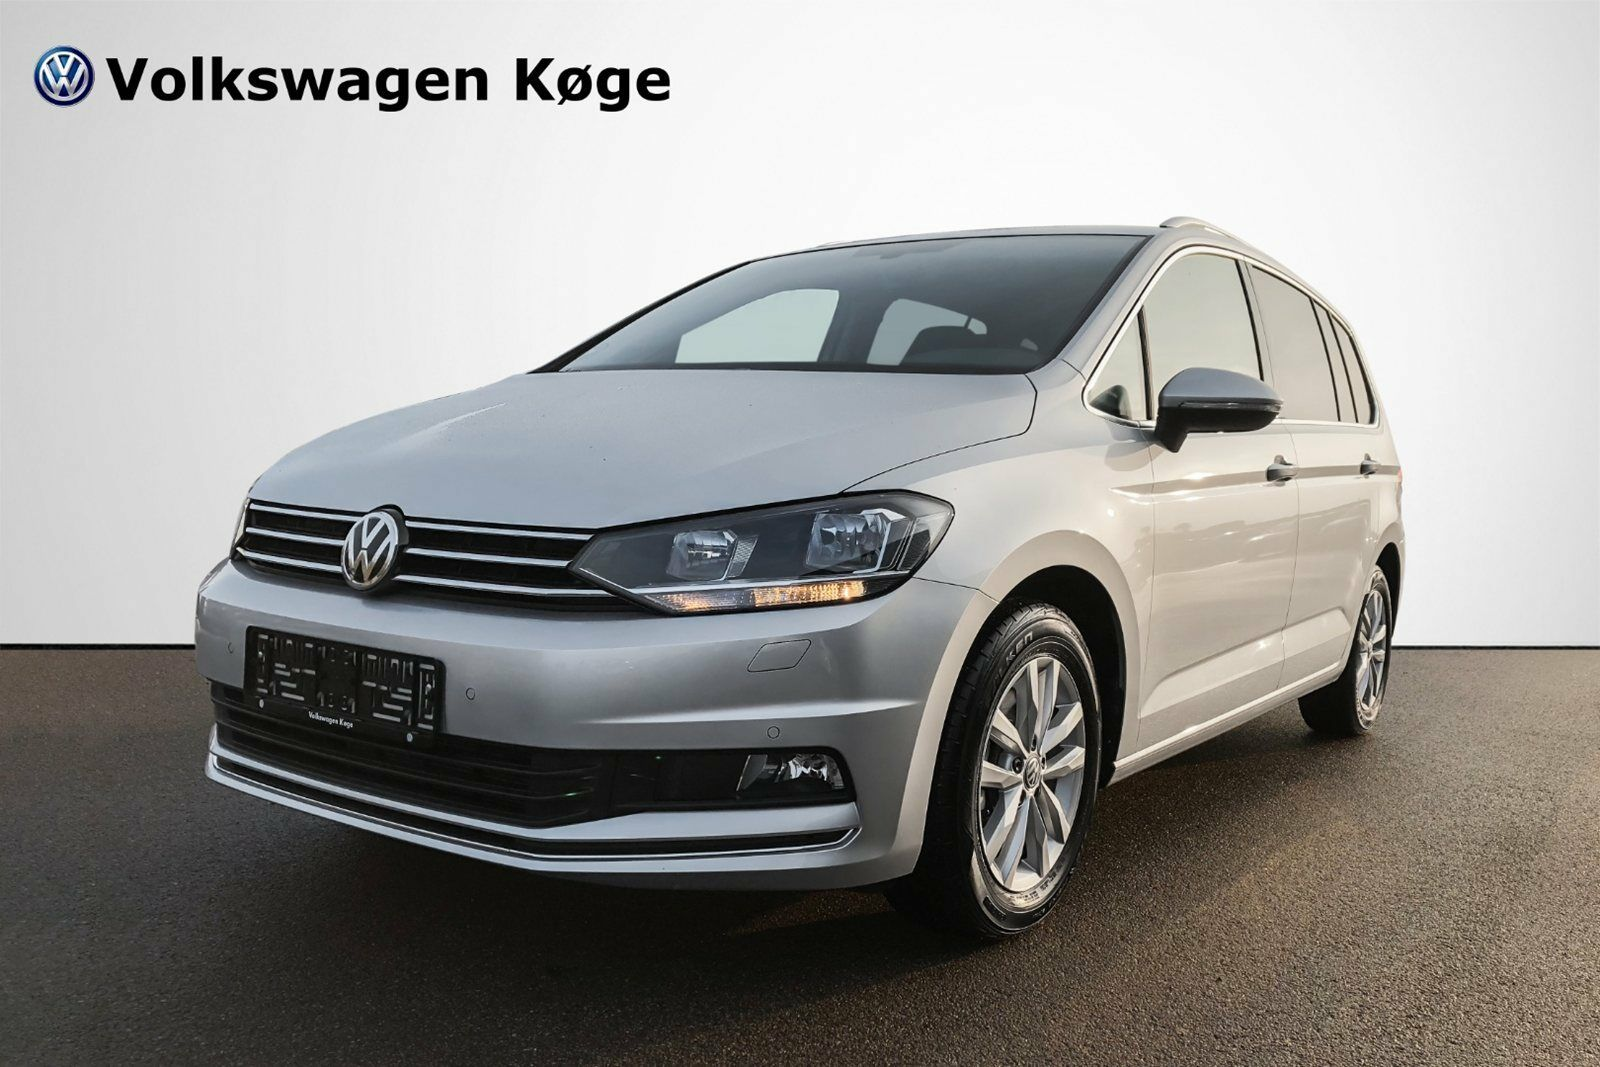 VW Touran 1,4 TSi 150 Highline DSG BMT 5d - 359.900 kr.